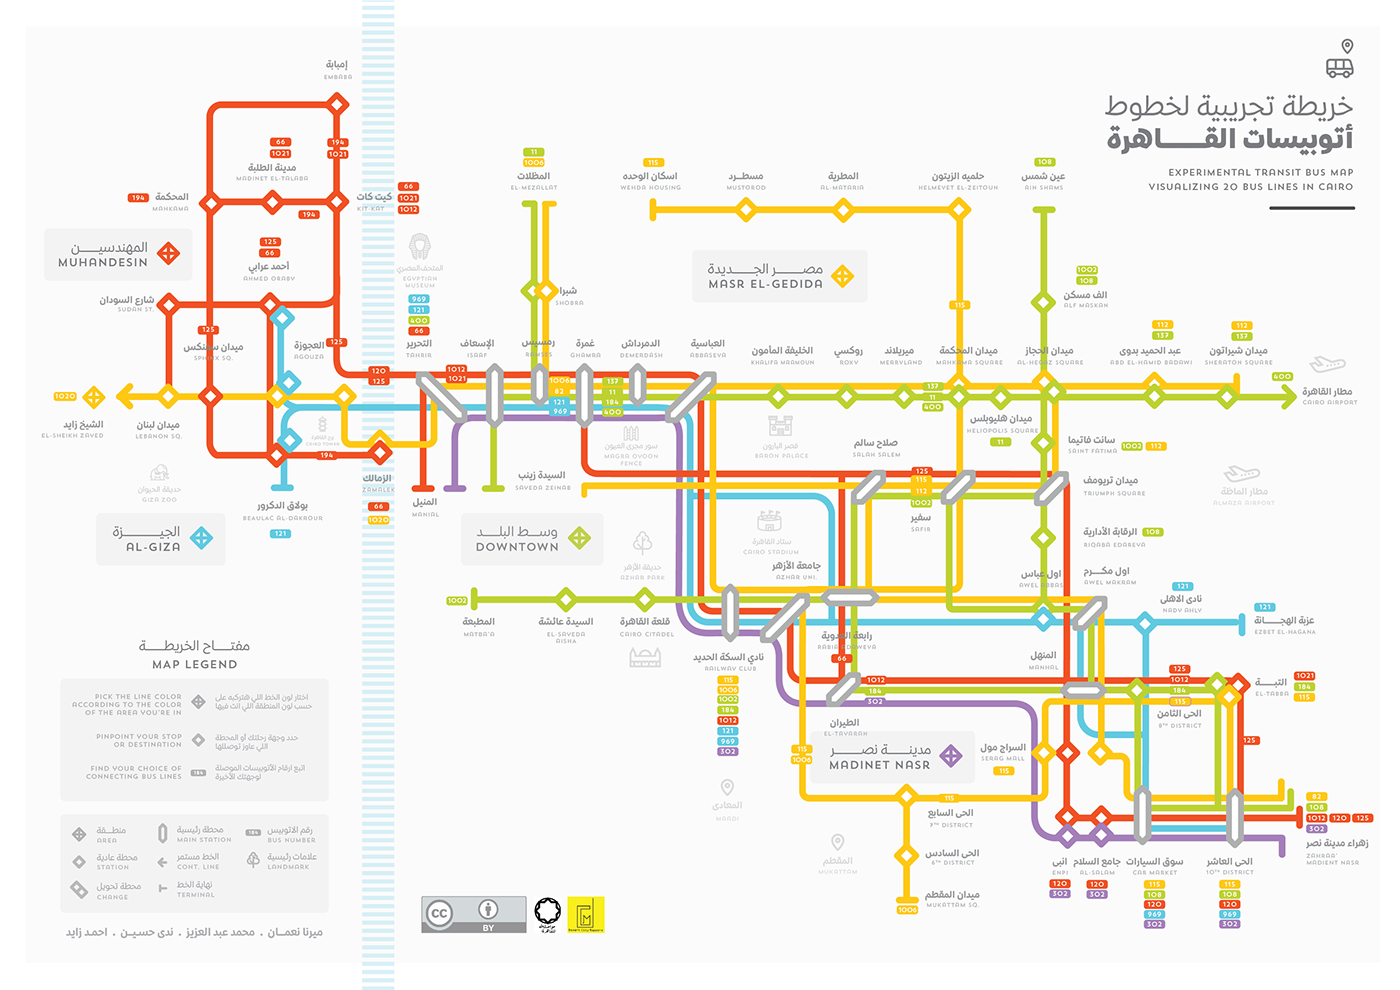 Experimental Cairo Transit Bus Map on Behance